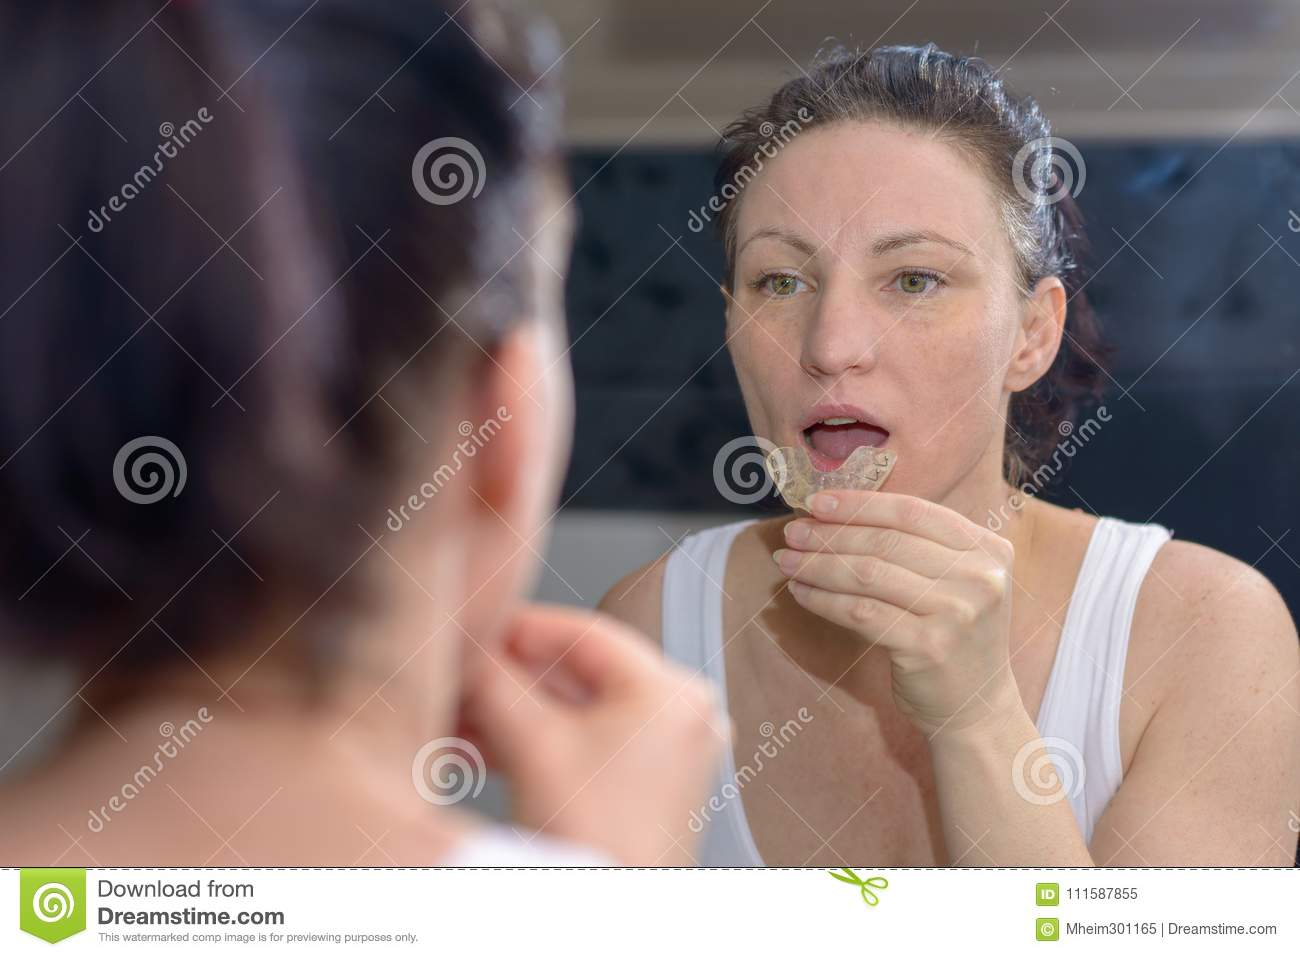 Woman holding a bite plate to prevent grinding